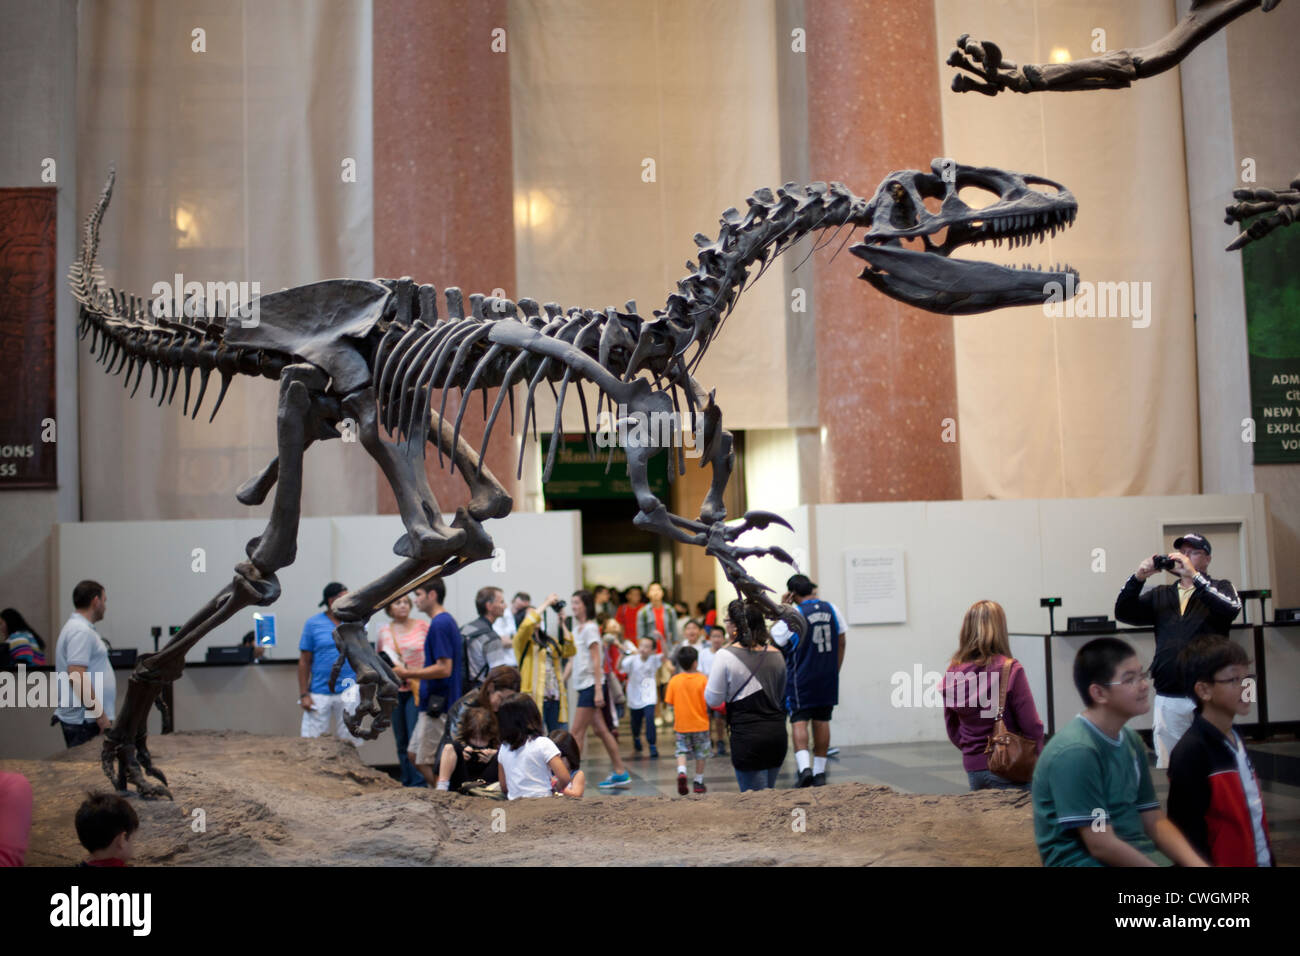 Dinosaurs in the lobby of the American Museum of Natural History - Stock Image